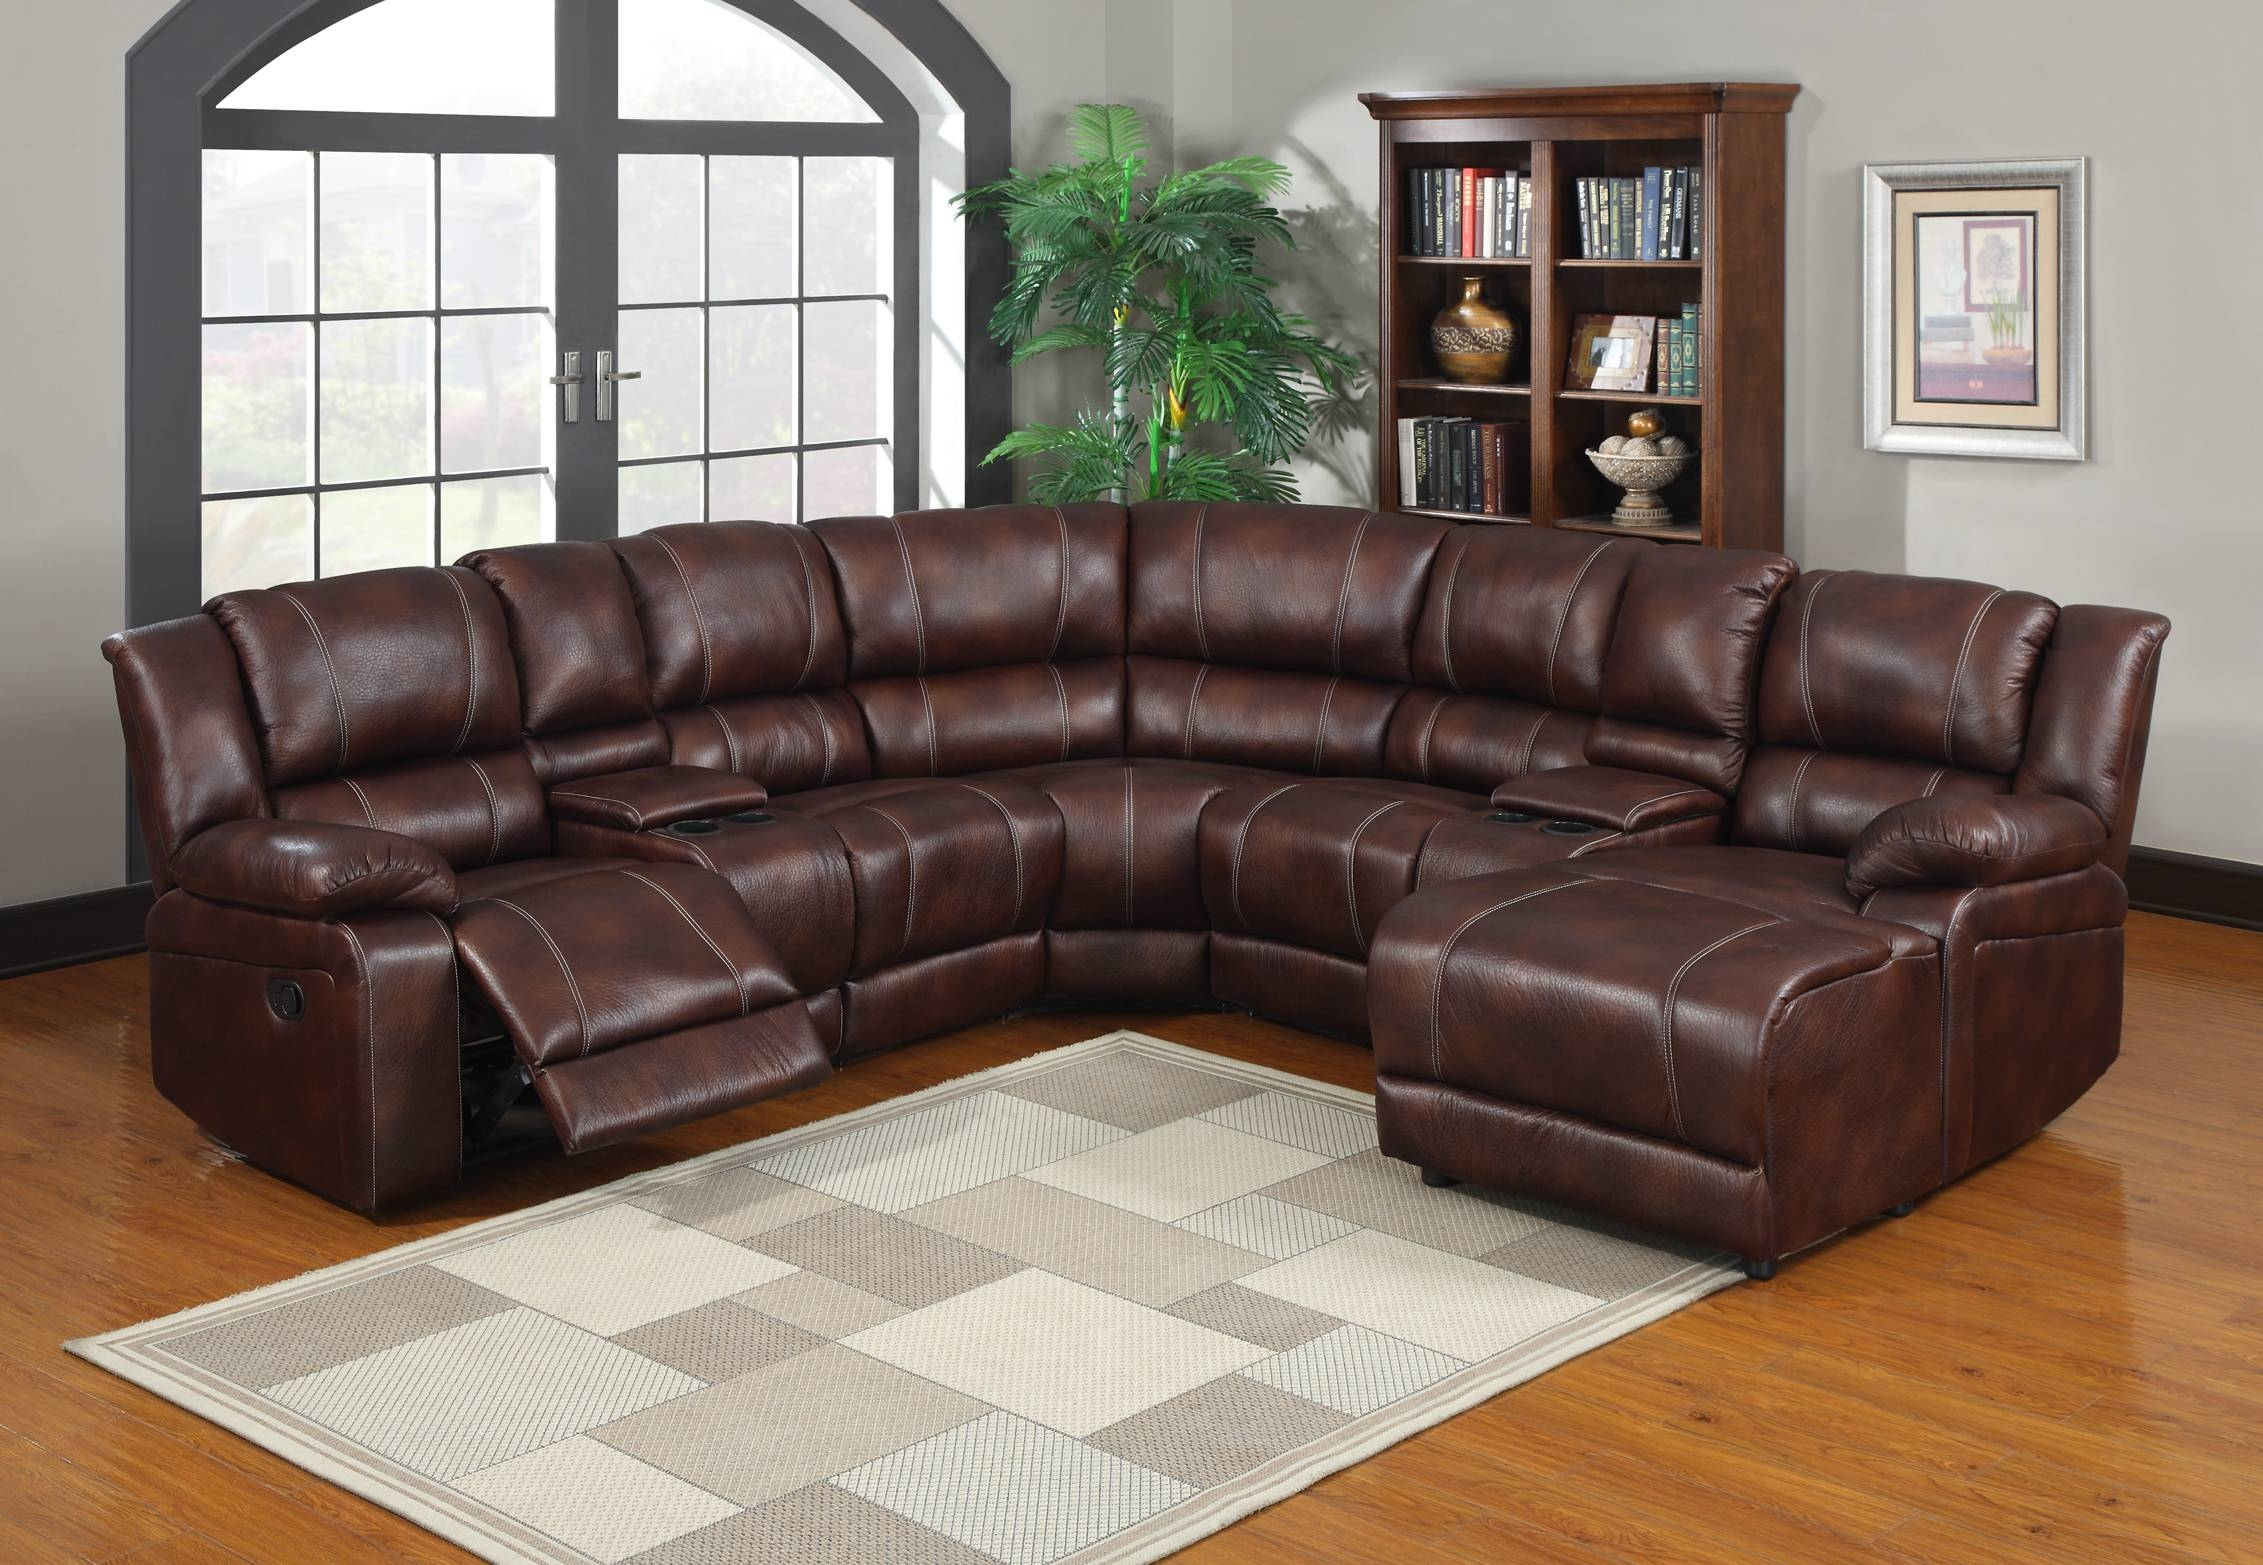 Sectional Sofas With Recliners And Cup Holders - Tourdecarroll throughout Curved Sectional Sofa With Recliner (Image 21 of 30)